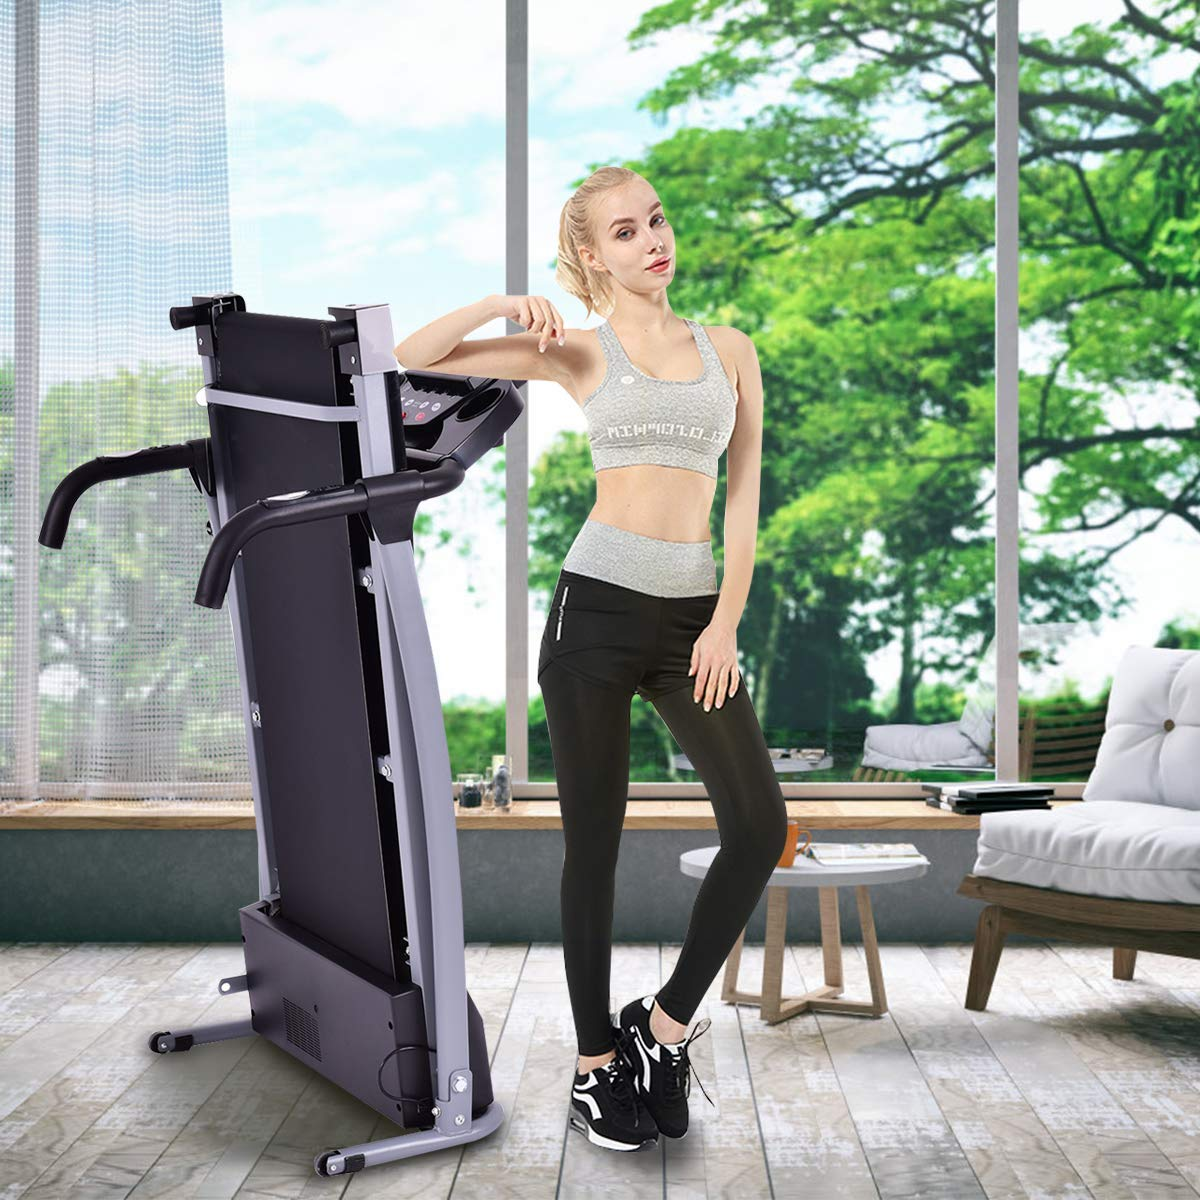 GYMAX Folding Exercise Treadmill Fitness Electric Treadmill Electric Motorized Power Fitness Running Machine 800W W/IPAD Mobile Phone Holder (Black) by GYMAX (Image #4)